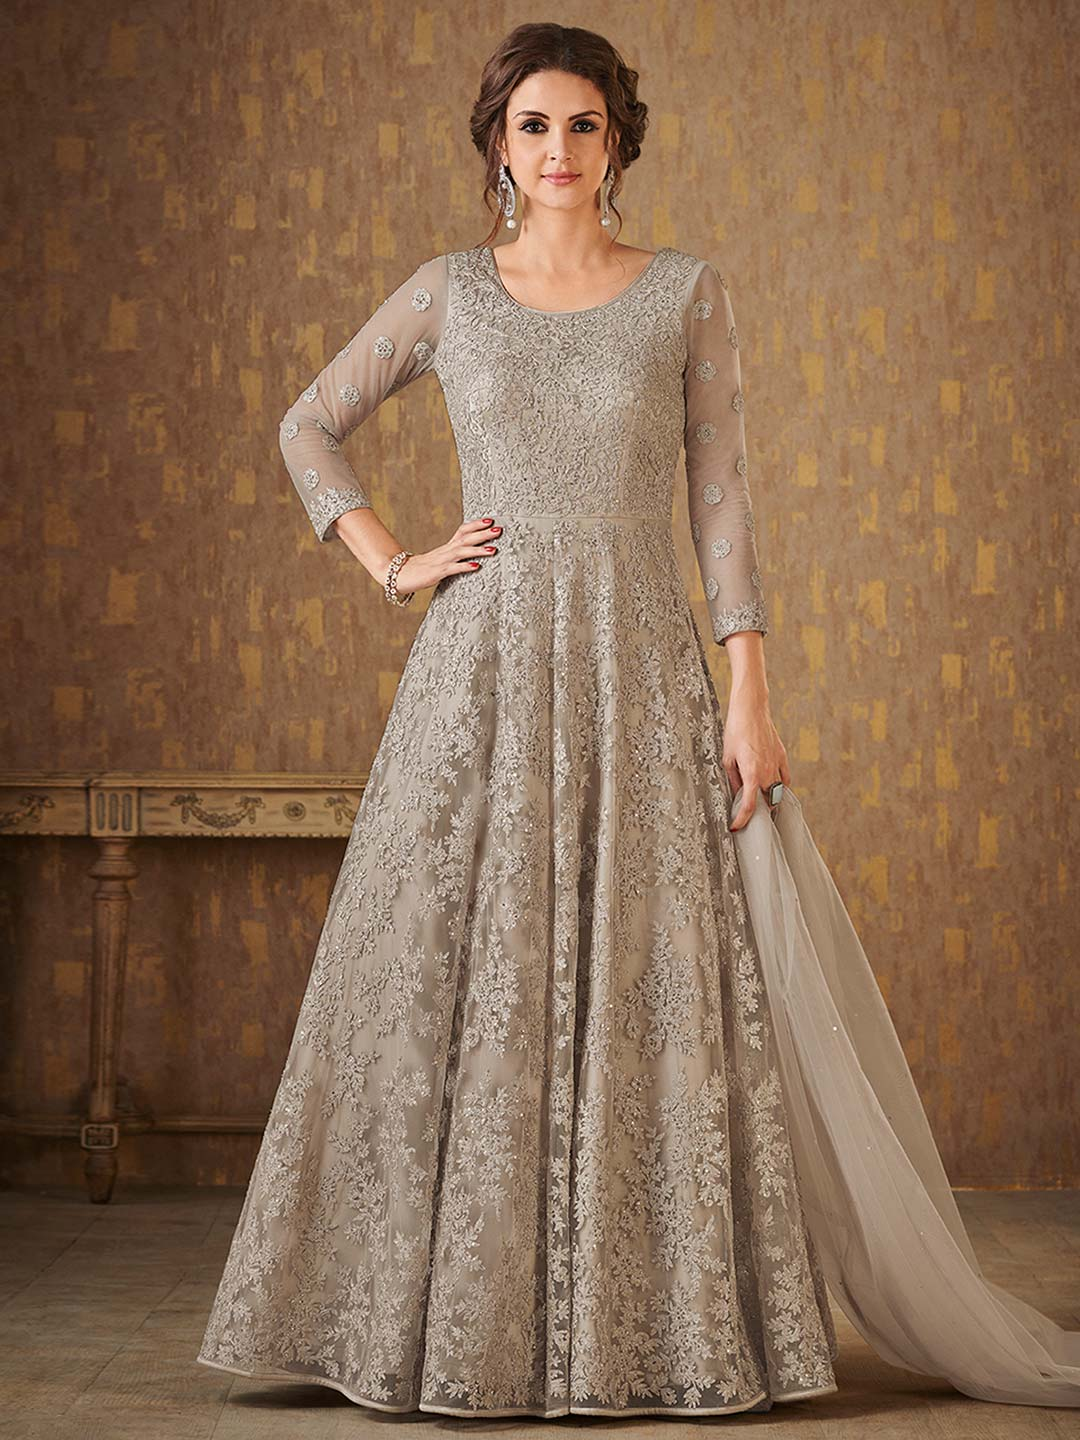 0f7c2c82426 55 Different Designs Of Salwar Suits For Women That Are Absolutely Trendy,  Latest trend in